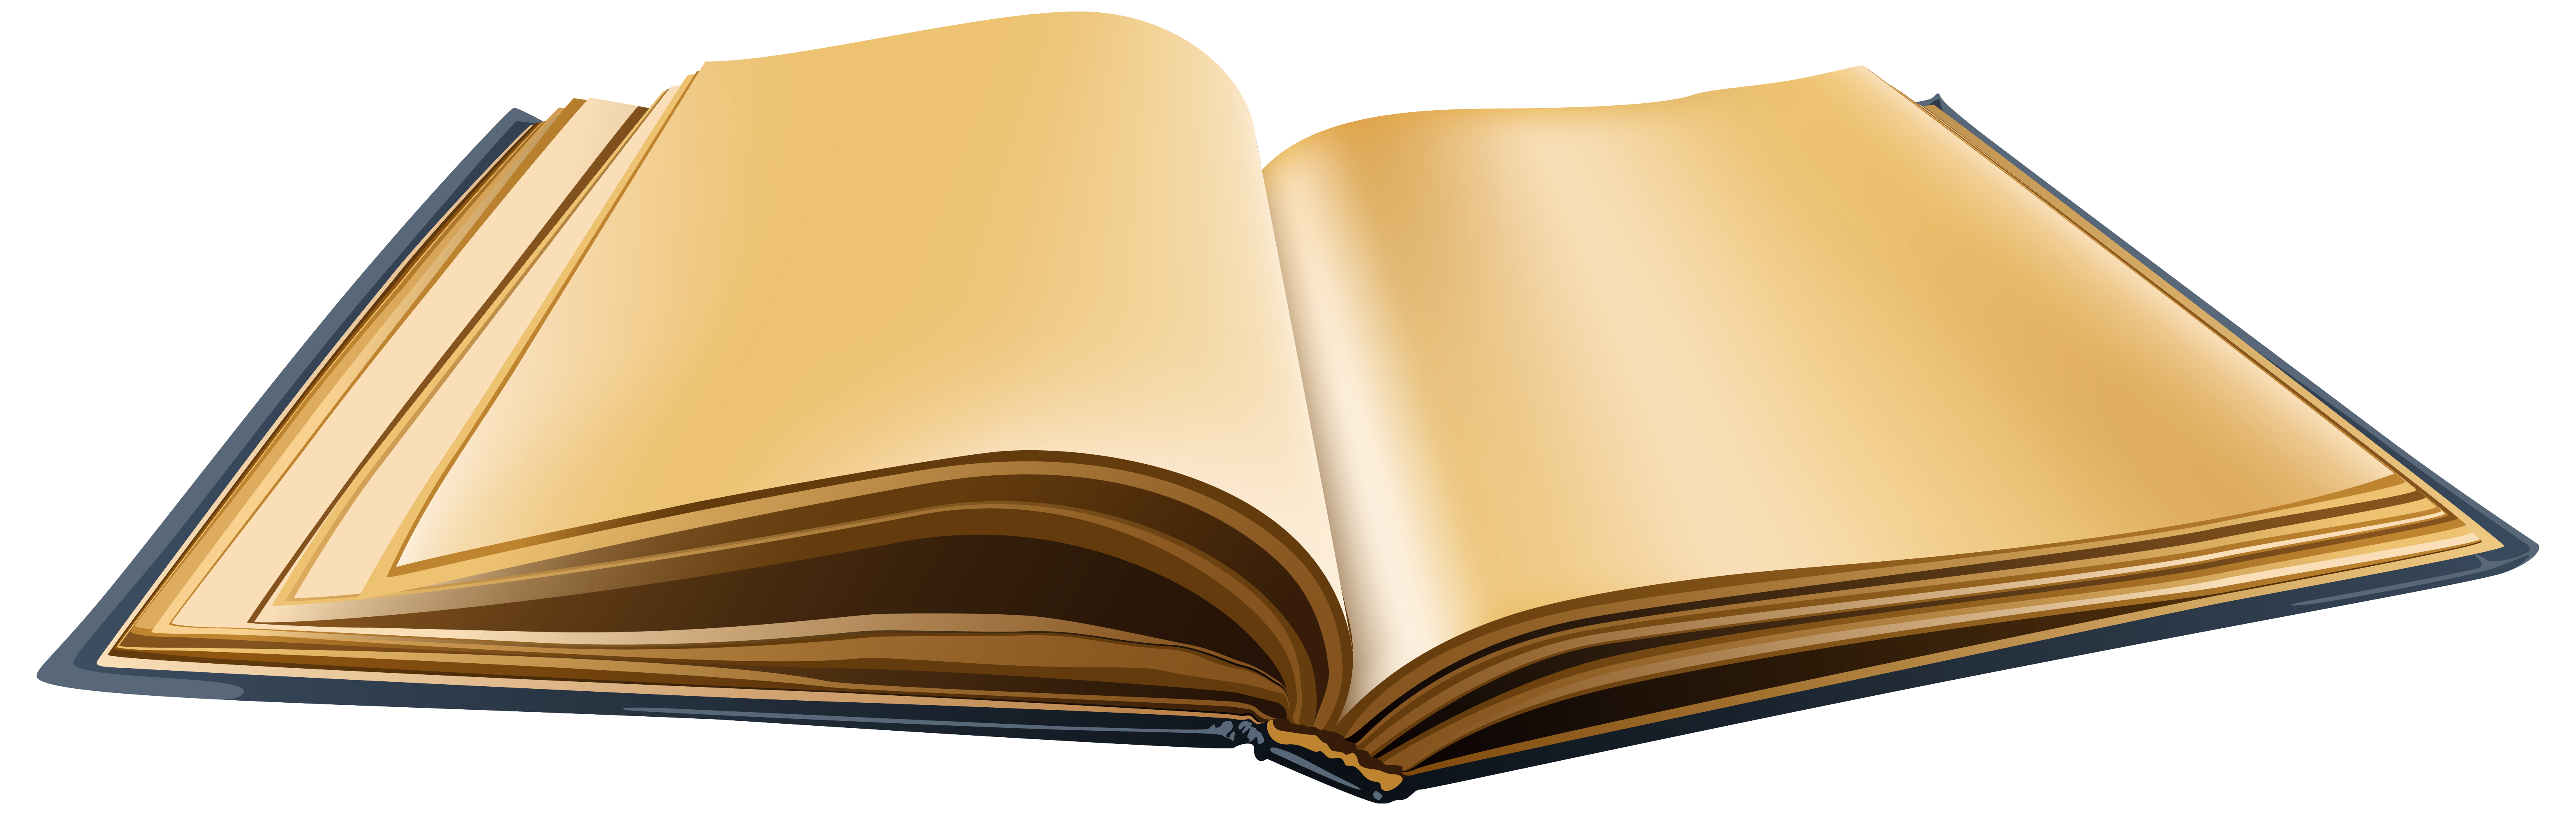 Clipart old books transparent library Old Book PNG Clipart - Best WEB Clipart transparent library